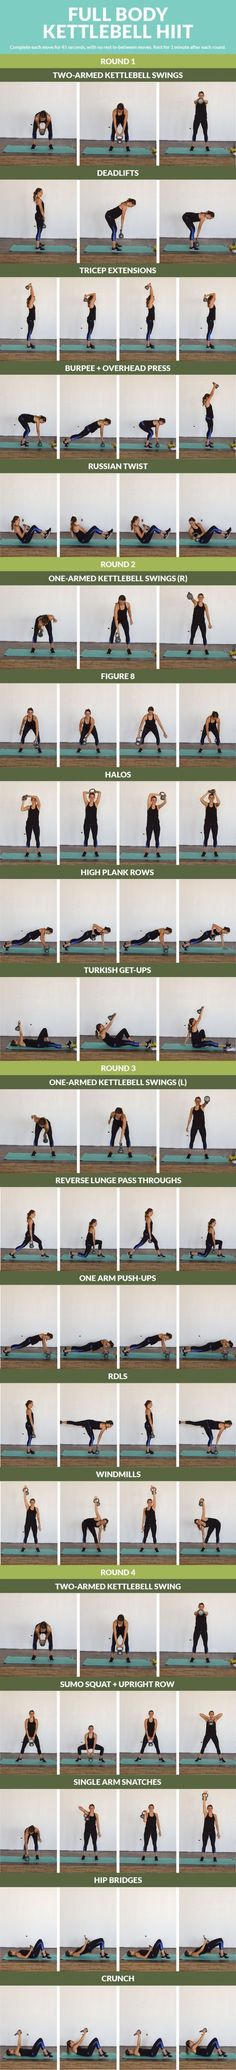 Strengthen your entire body with this 20 minute cardio and strength kettlebell combo! Mix up your regular workout routine with these fun, yet effective kettlebell exercises. You'll tone multiple mu… #kettlebells #kettlebellexercise #KettlebellExercises